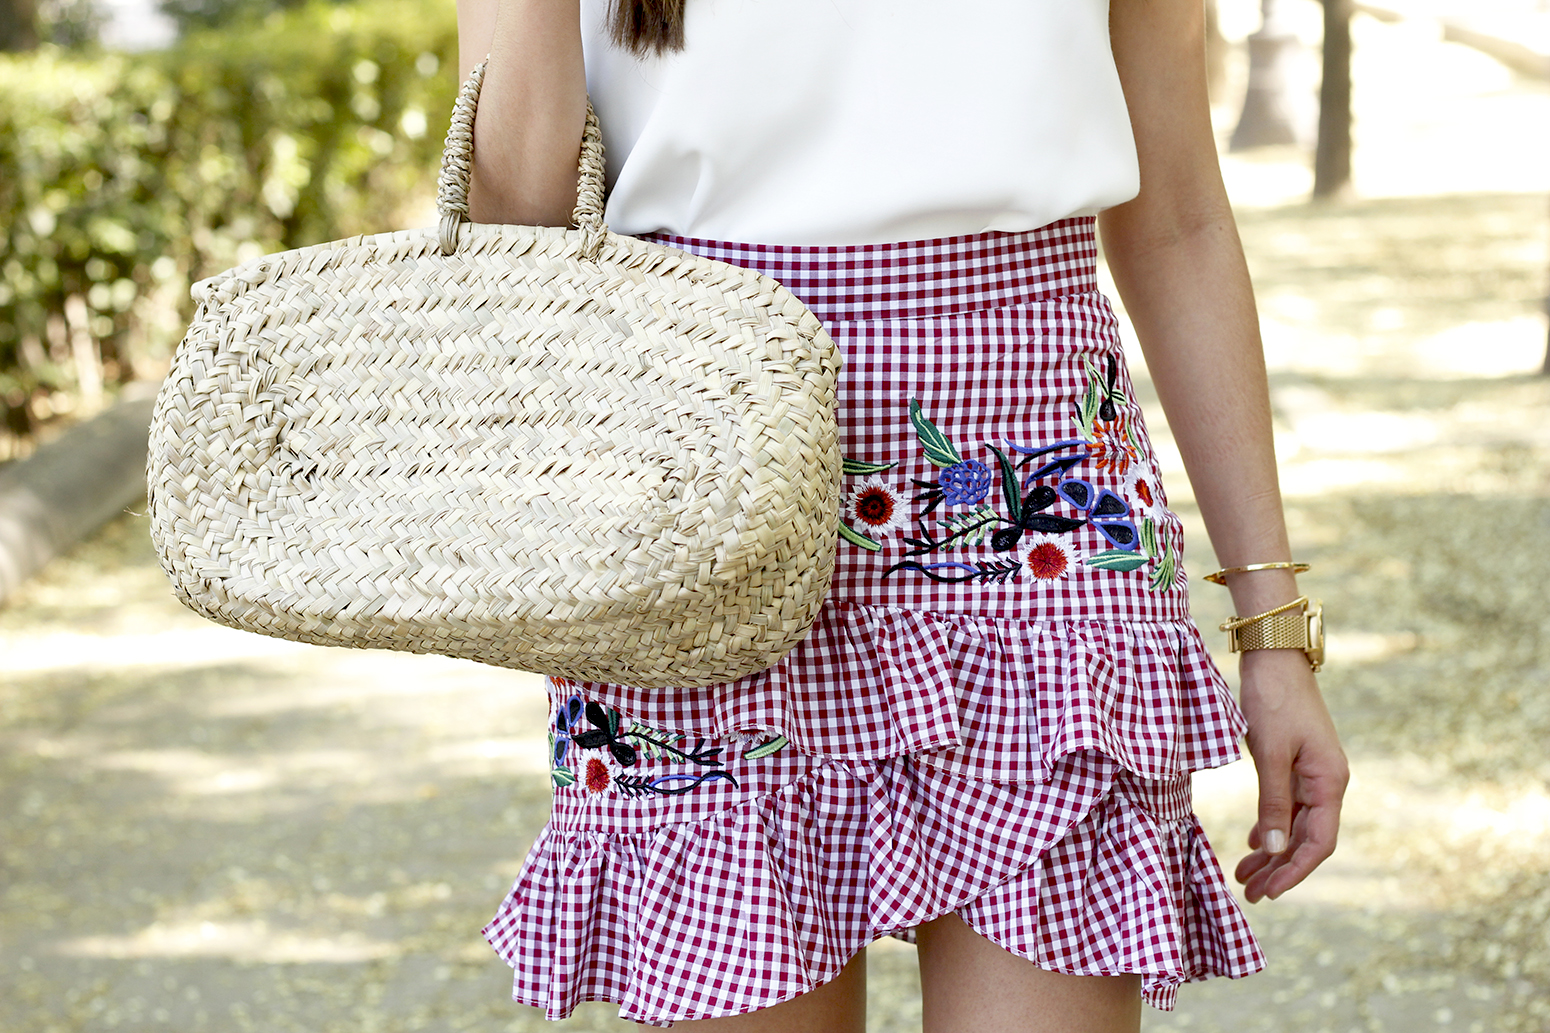 Vichy skirt with embroidered flowers rafia bag heels summer outfit style16